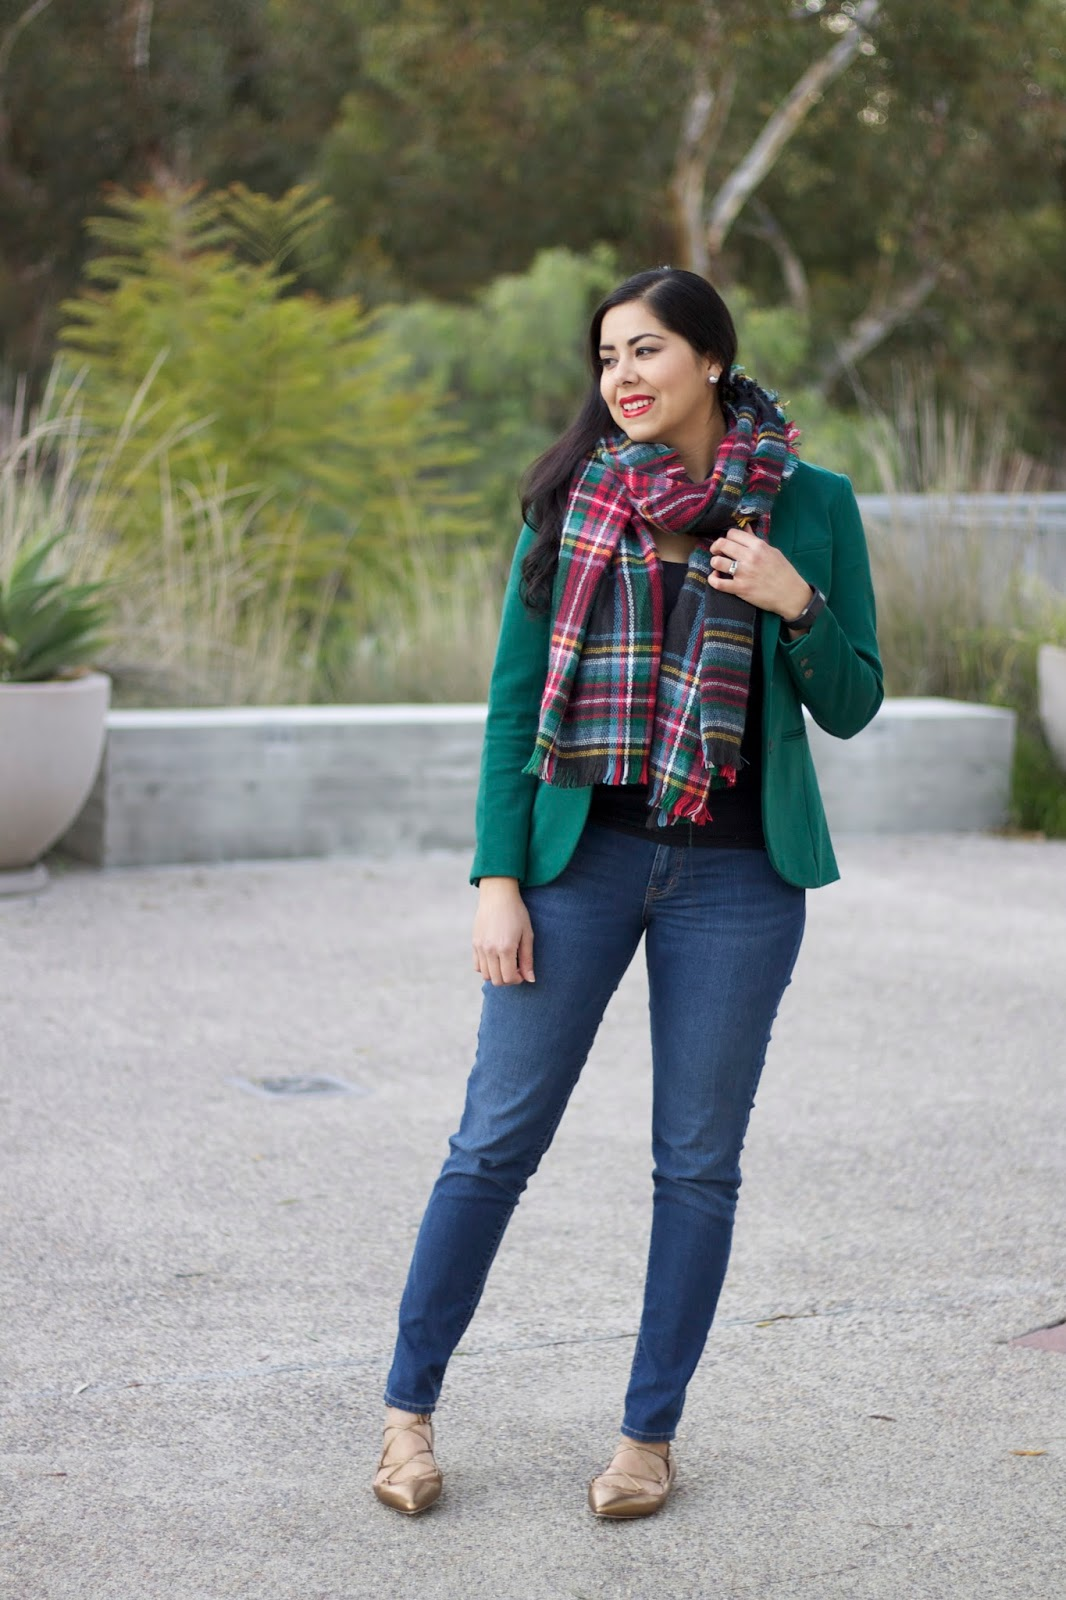 Plaid scarf outfit, target plaid scarf, Christmas in San Diego, San Diego Fashion Blogger, San Diego Style Bloggers